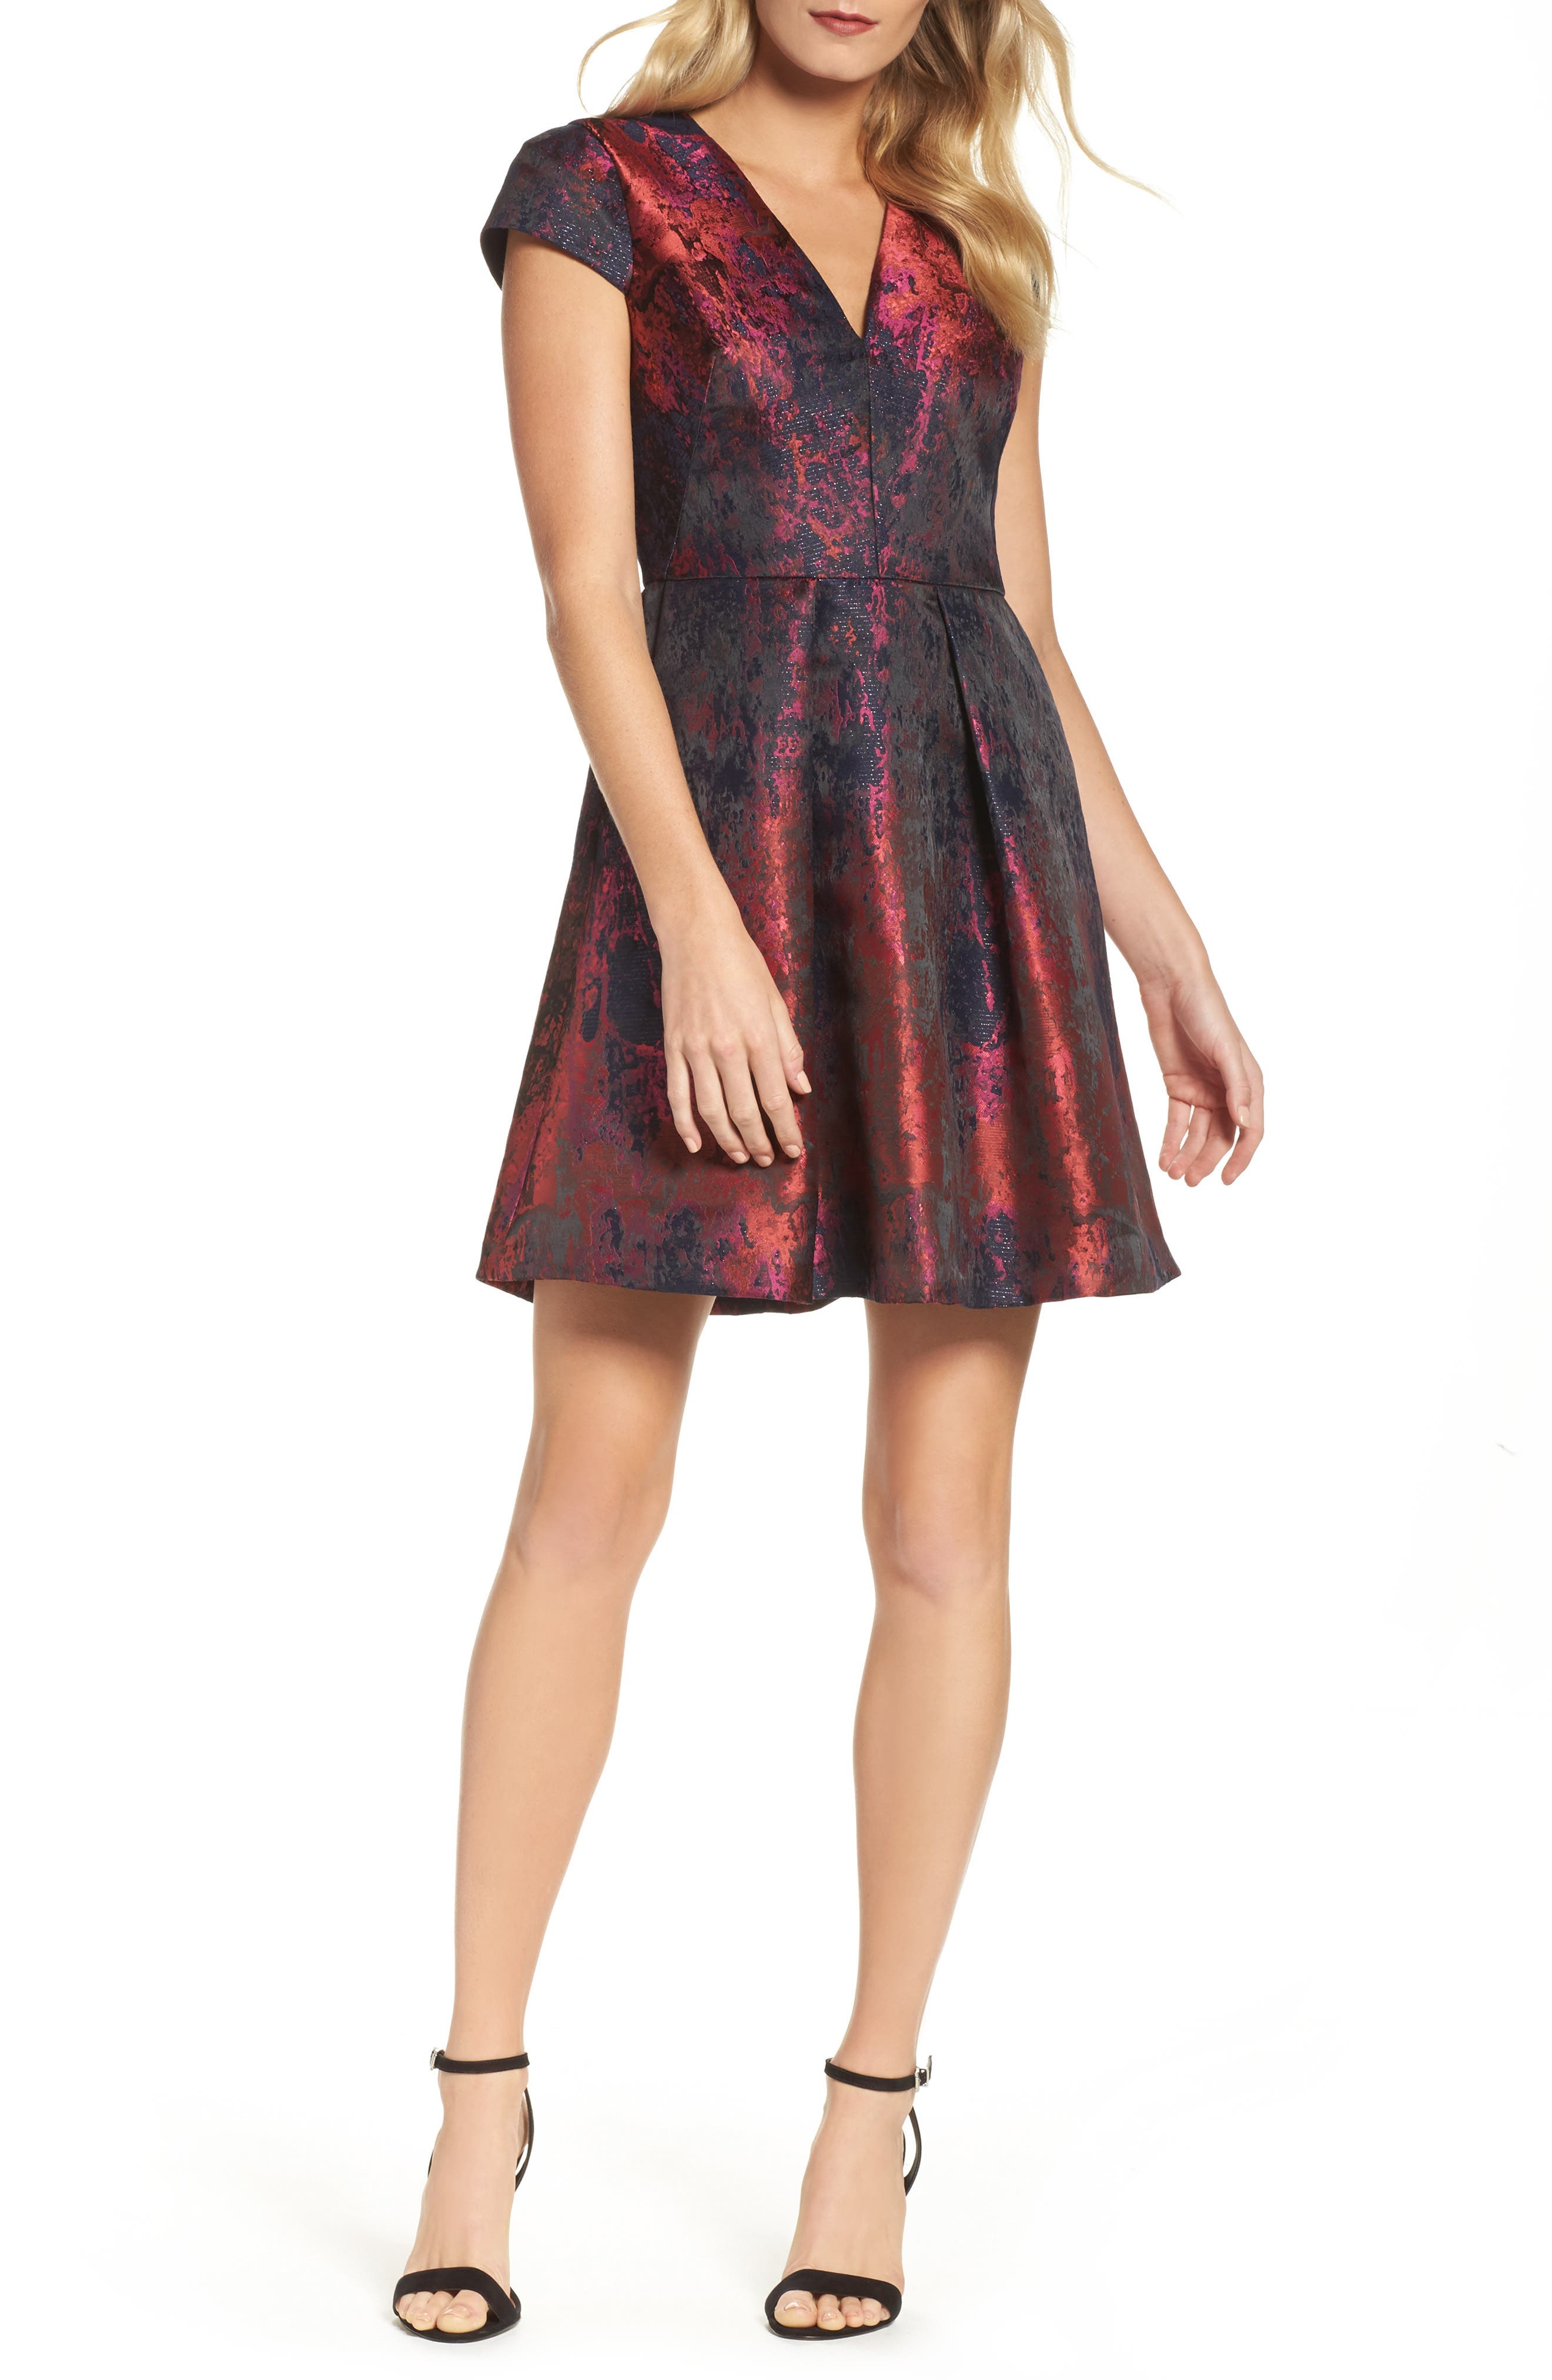 Alternate Image 1 Selected - Vince Camuto Jacquard Fit & Flare Dress (Regular & Petite)